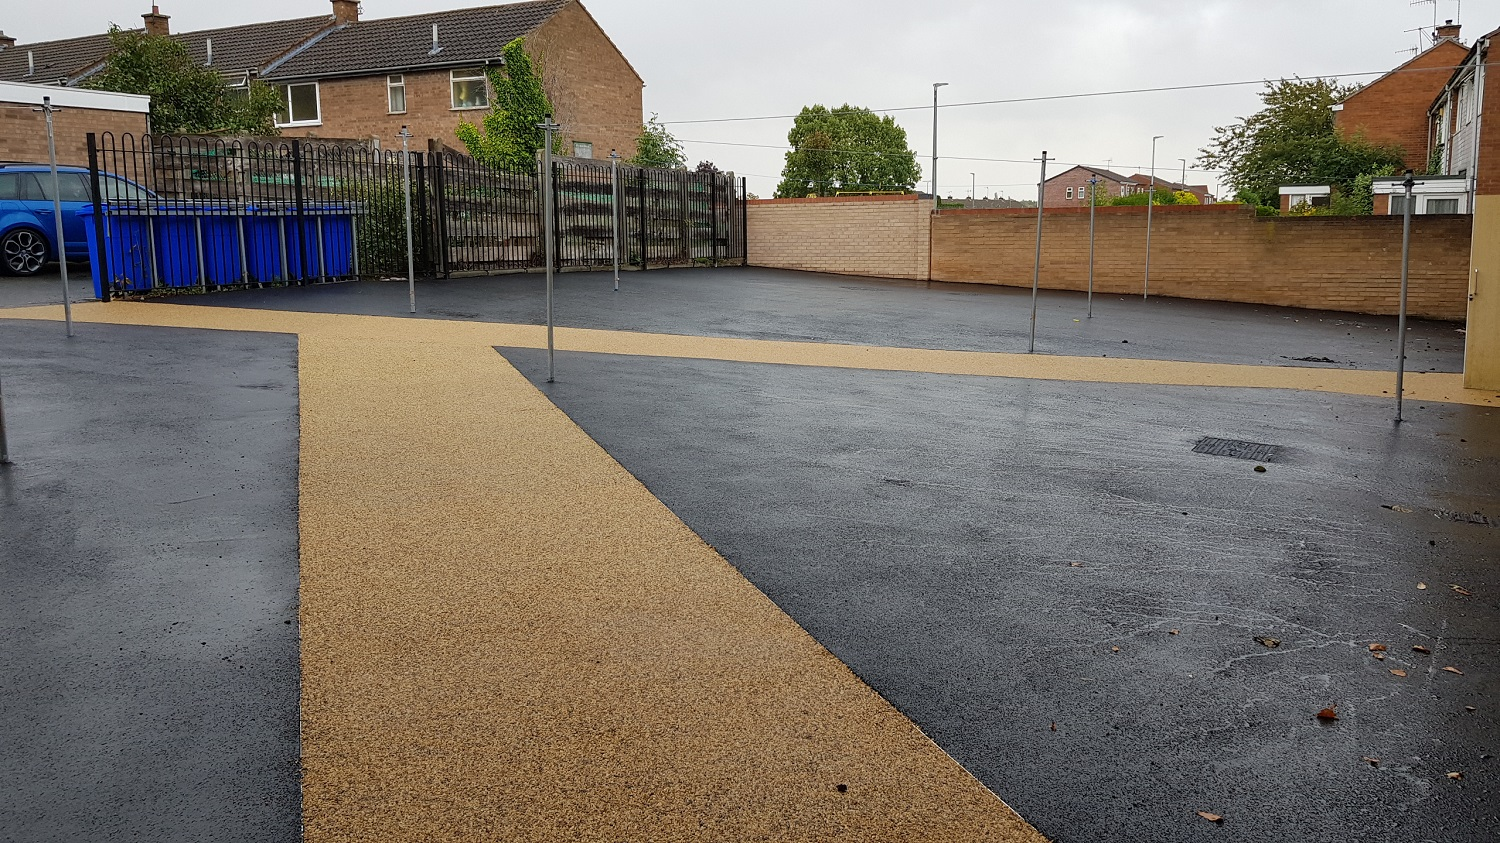 P16 Tarmac and Resin Bound Surfacing to Drying Area at Loundsley Green in Chesterfield